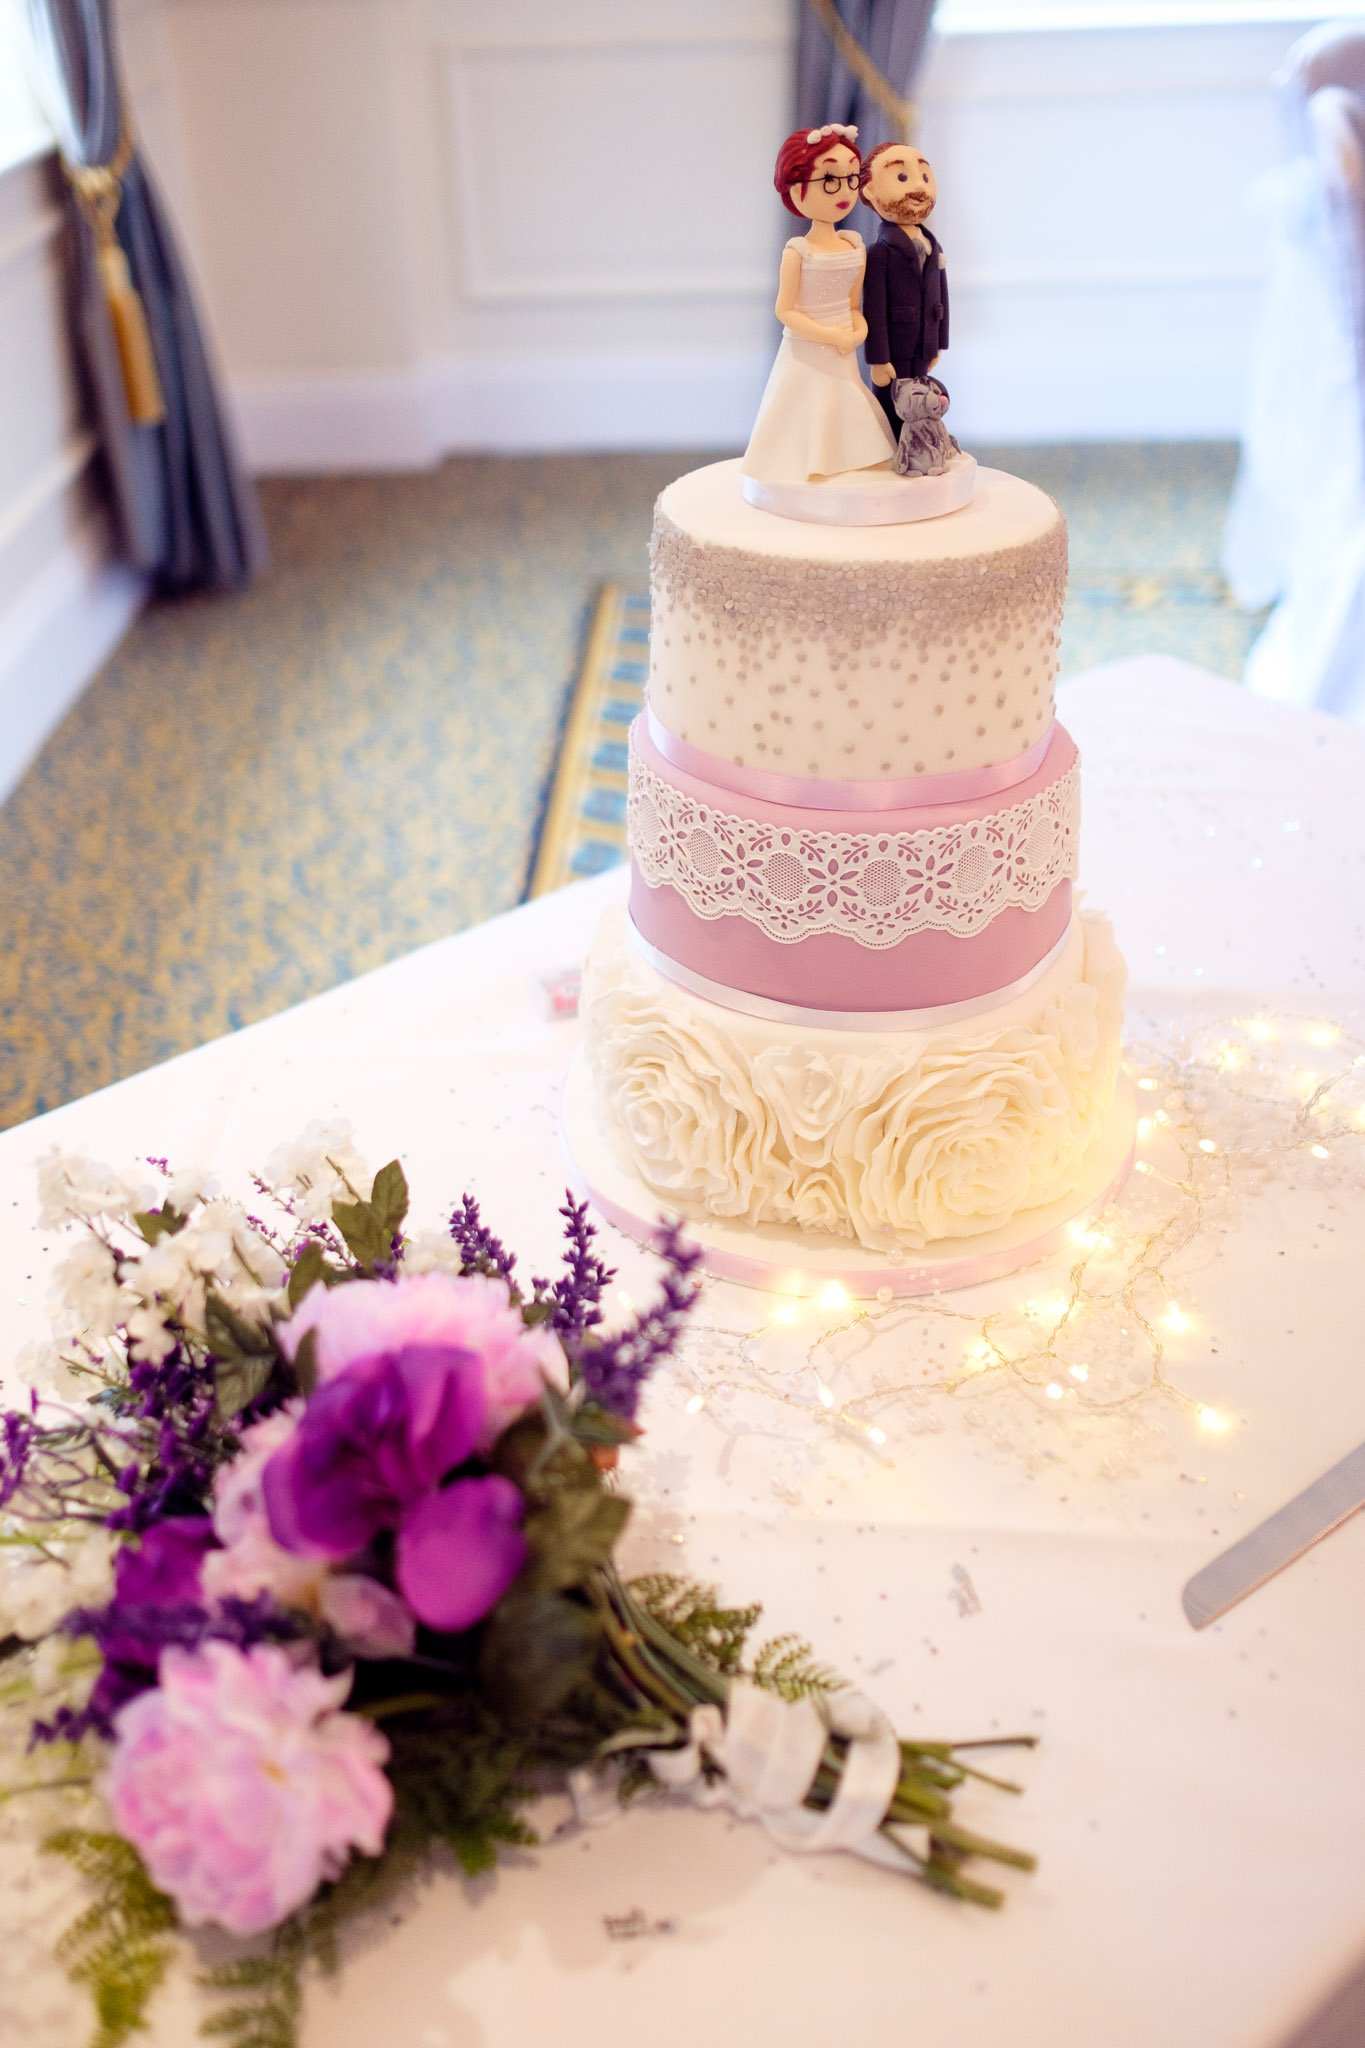 Iced 3 tier wedding cake with personalised bride & groom cake topper at Orsett Hall Hotel Essex